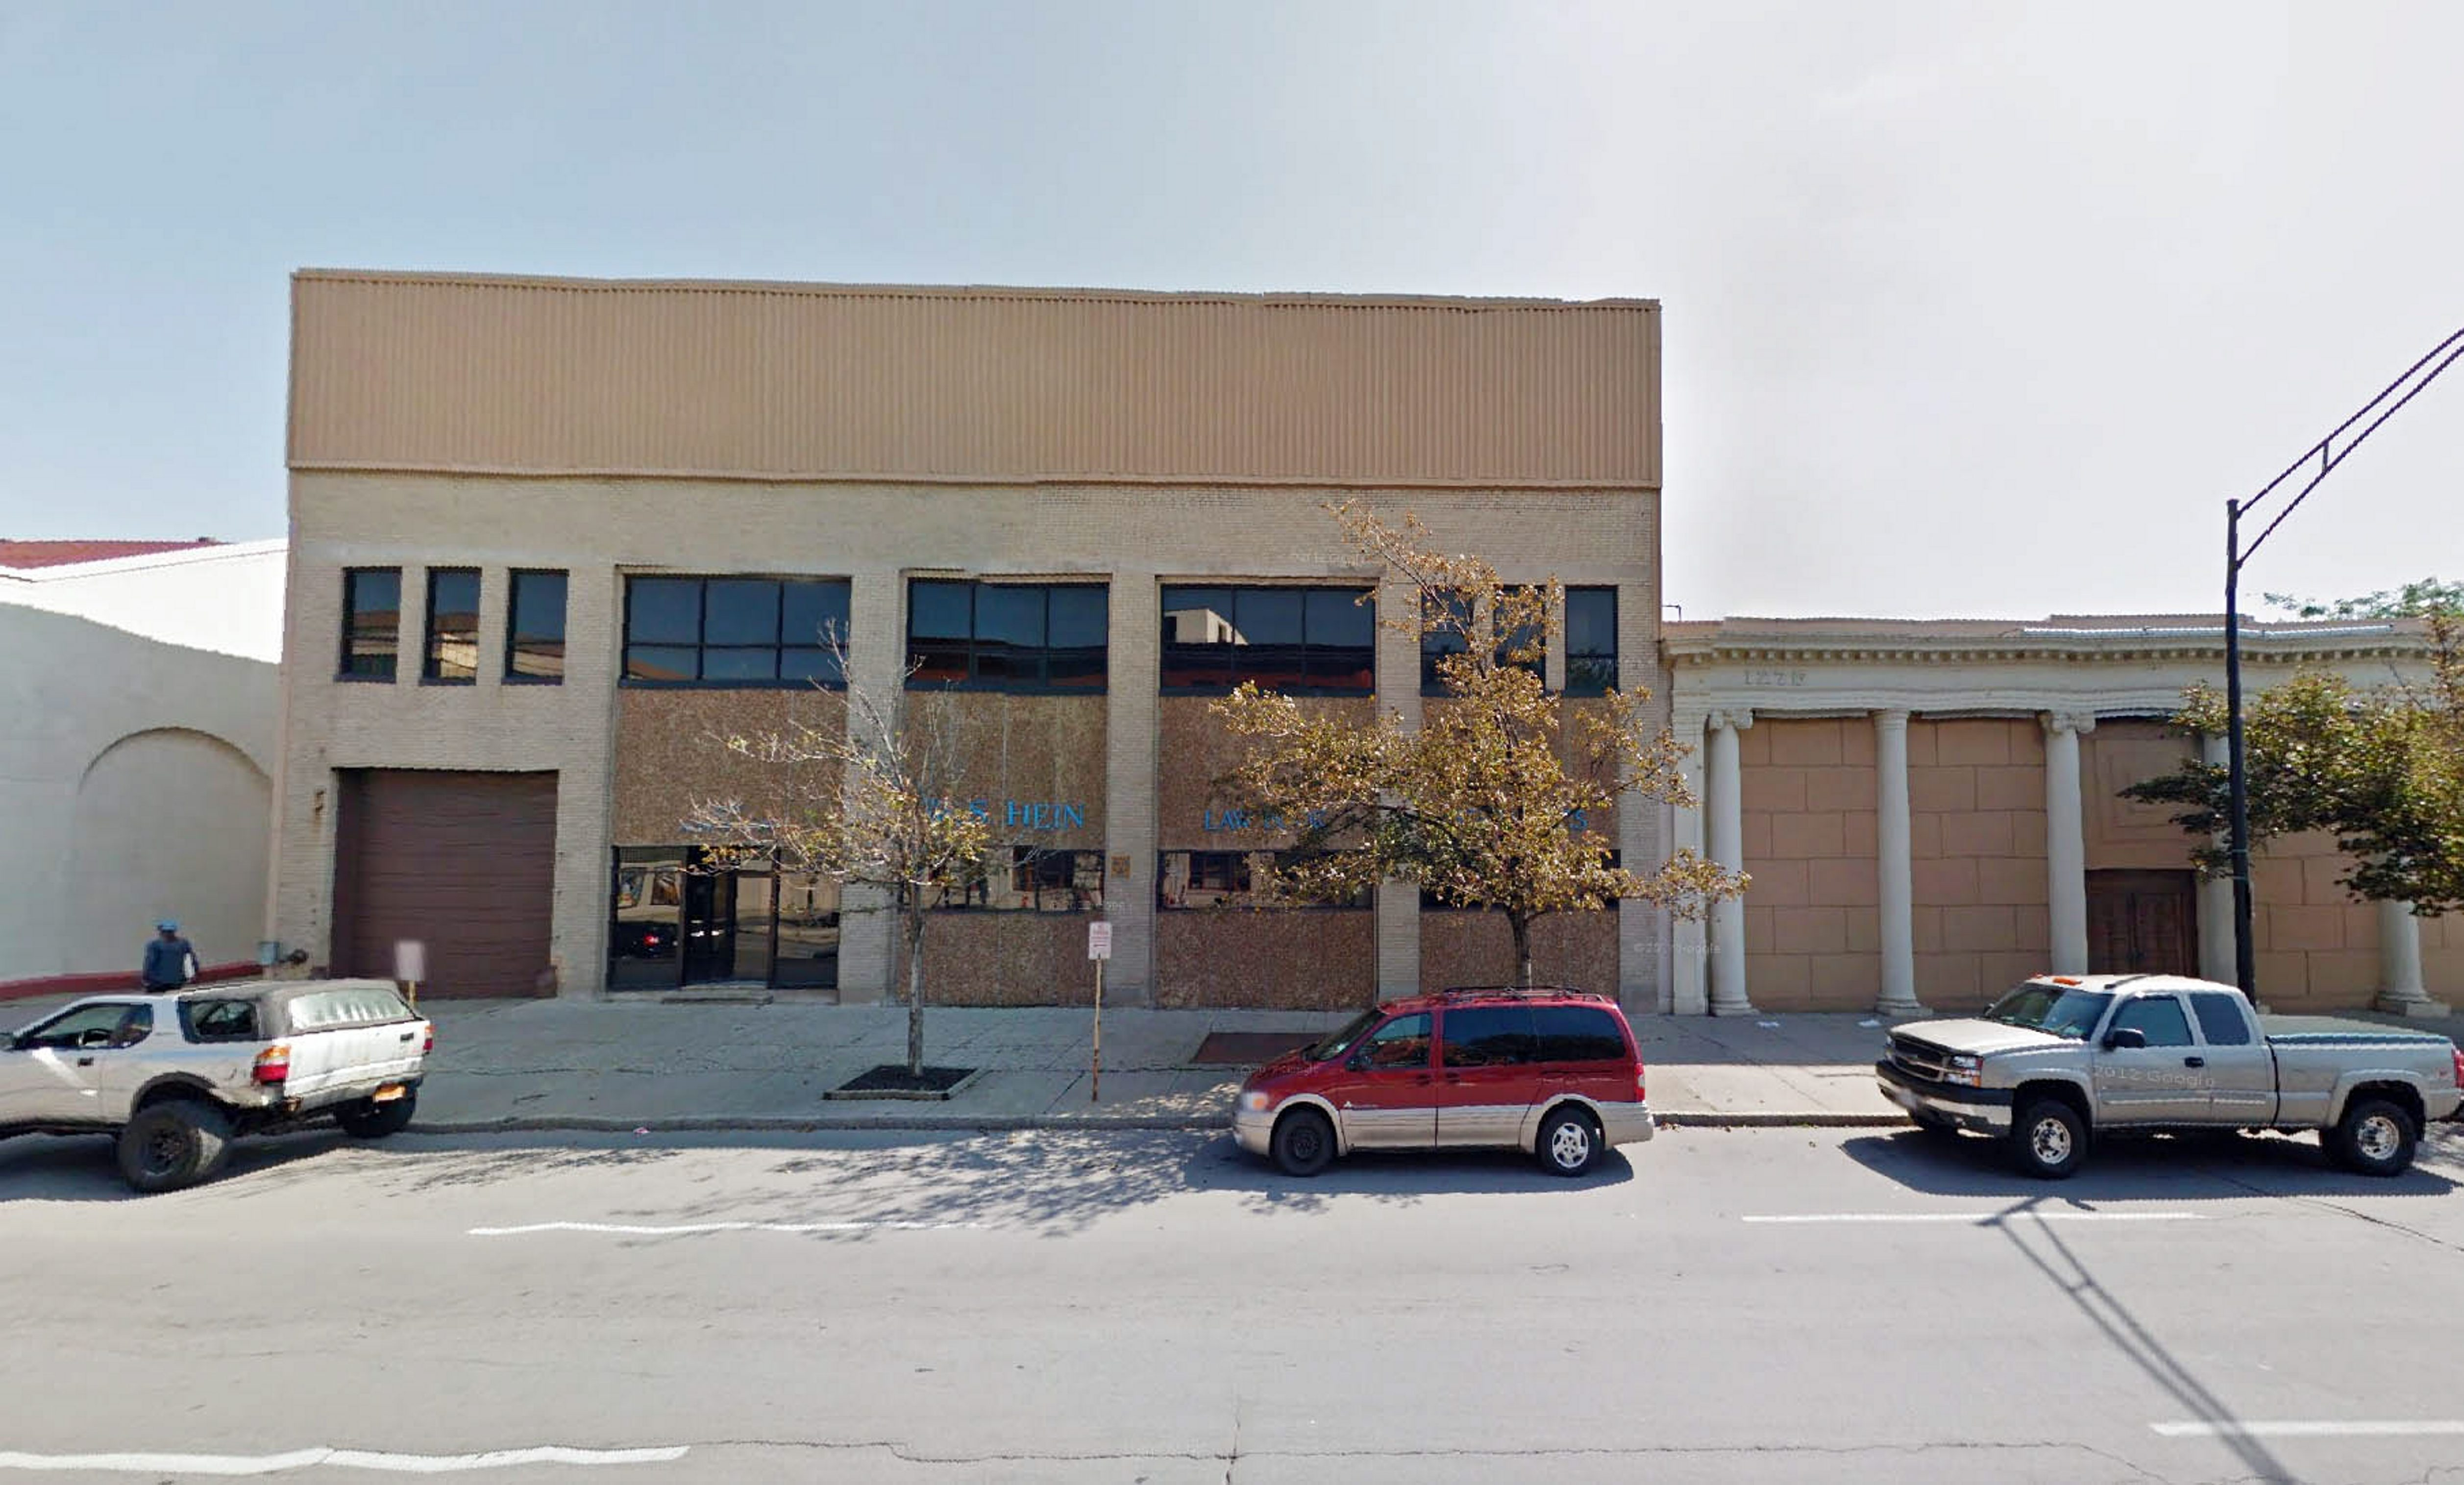 Ellicott Development plans to redevelop the former home of W.S. Hein Publishing Co., at 1285 Main St. The project calls for 19 market-rate apartments on the building's third floor.